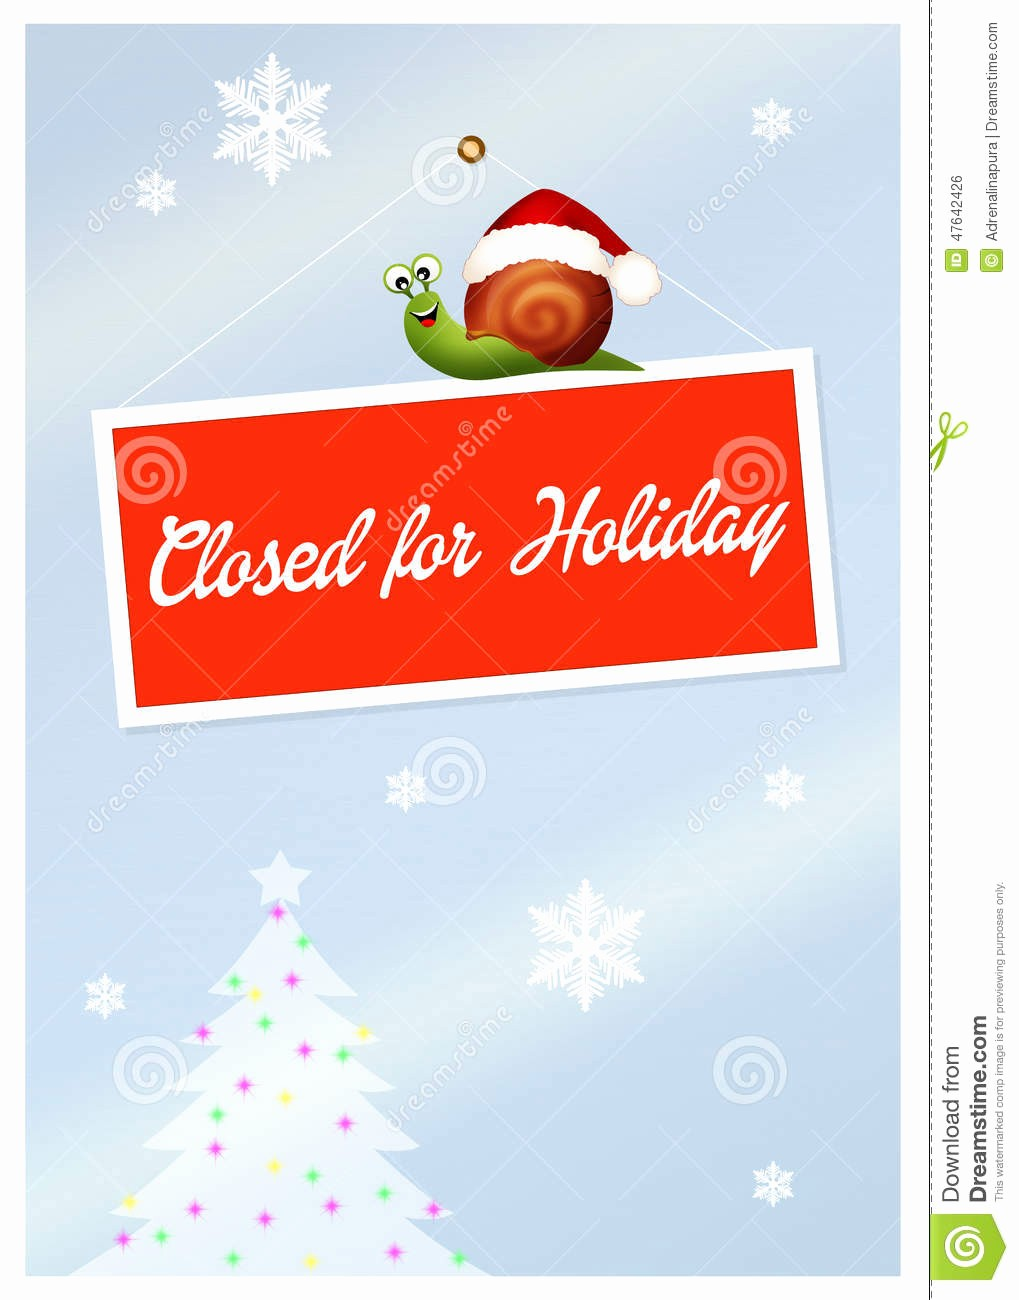 Closed for the Holidays Sign Beautiful Closed for Holidays Stock Illustration Image